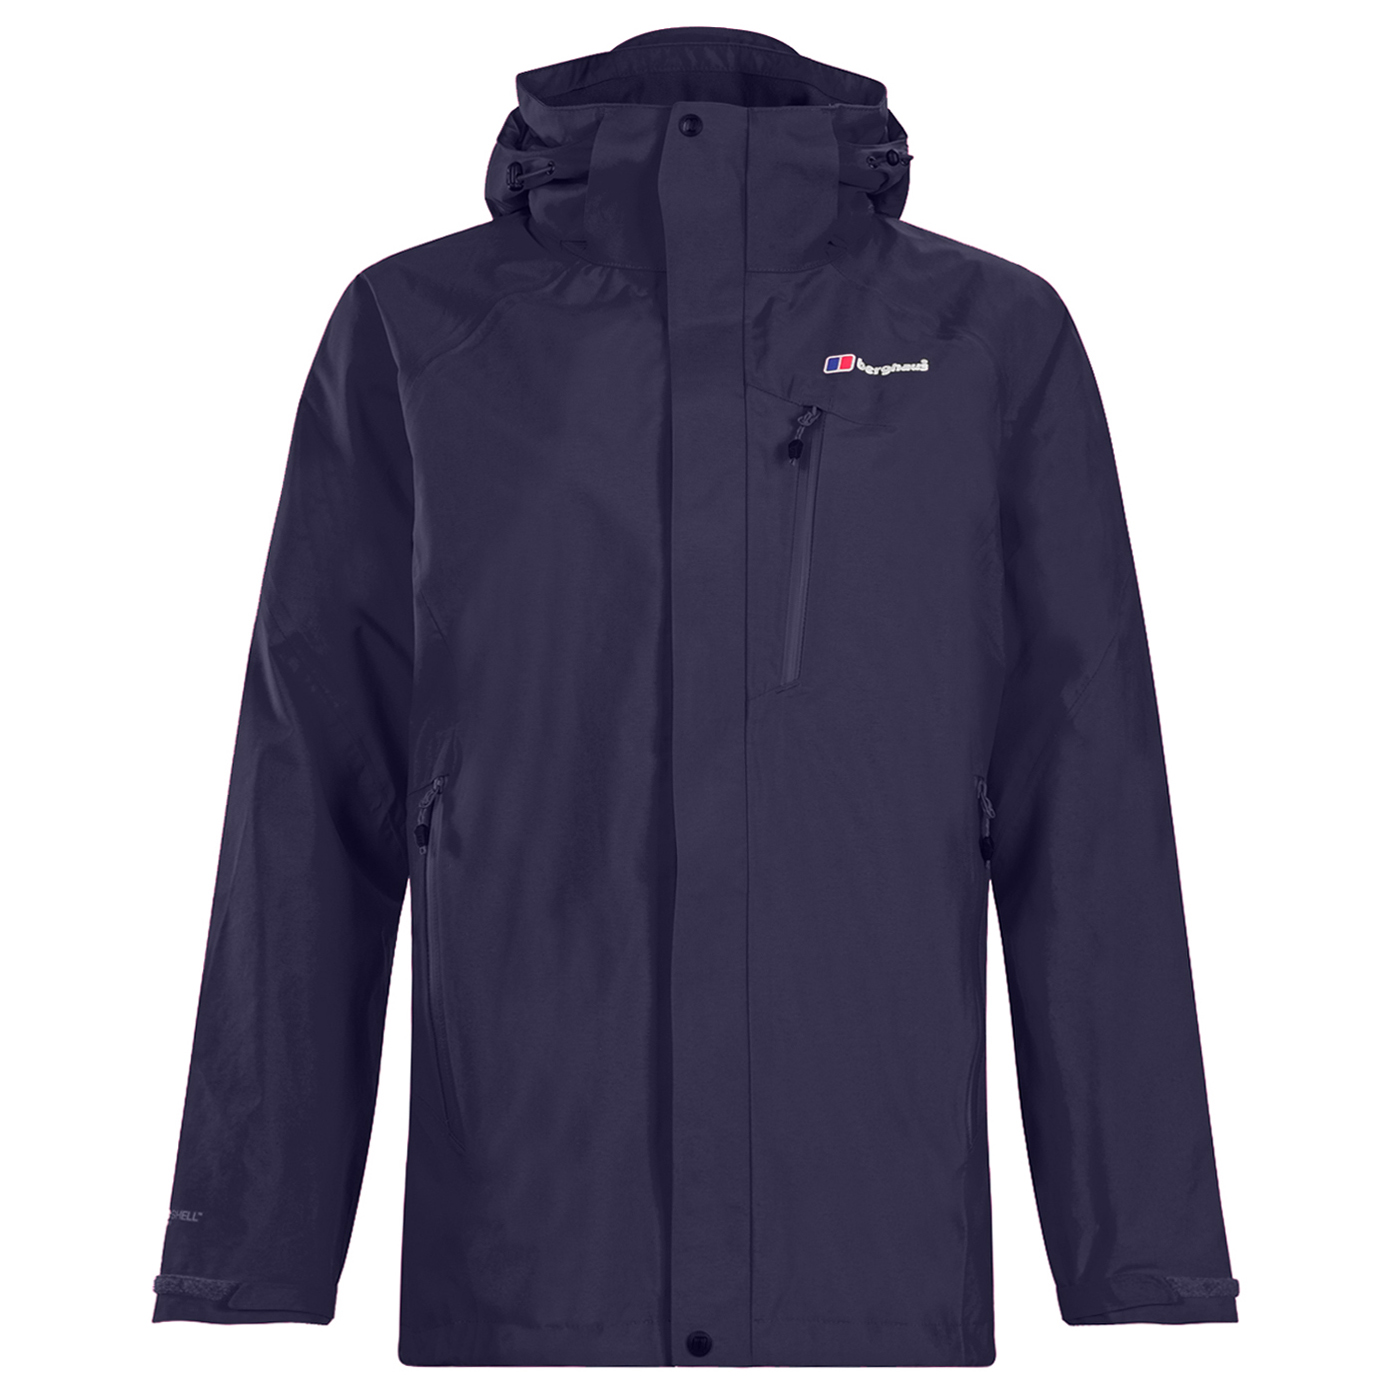 Jacket Women's Regenjacke Evening Blue18uk Skye Berghaus Shell 80PwOkn